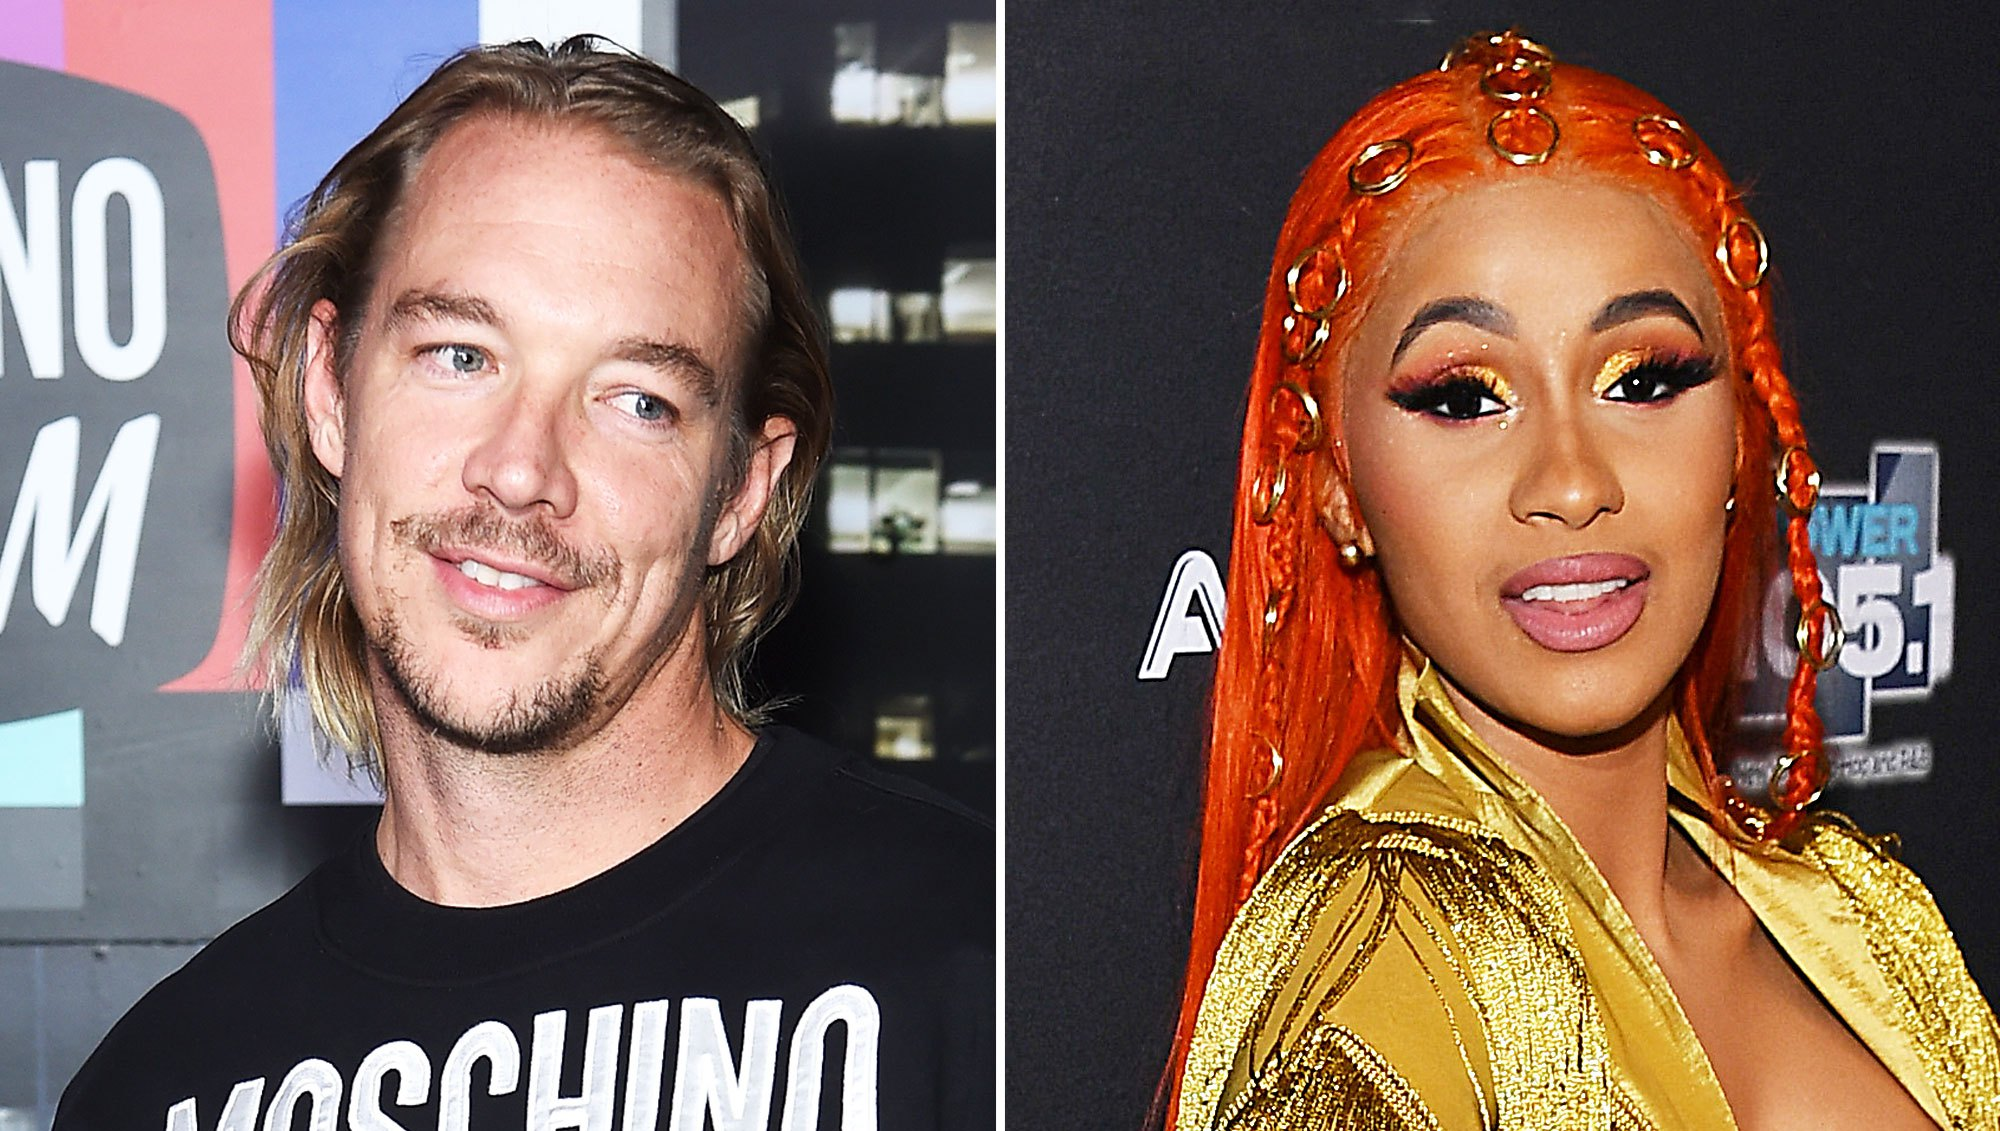 Diplo Leaves a Flirty Comment on Cardi B's Instagram After Her Split From Husband Offset